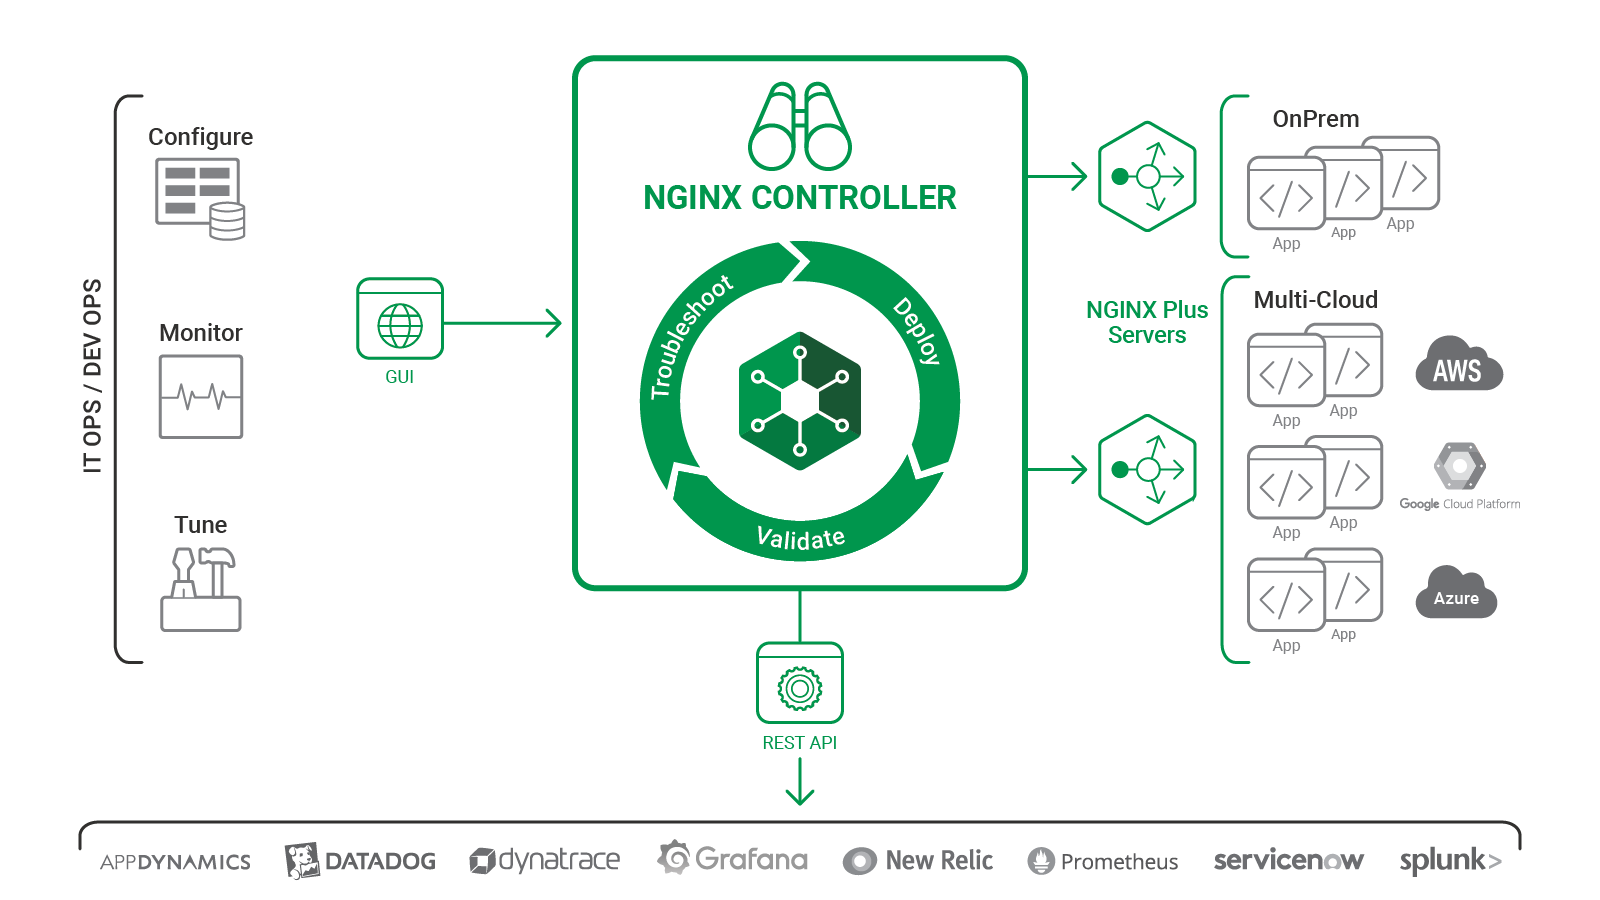 Graphic showing NGINX Controller interaction with users, servers, and other management and monitoring tools.